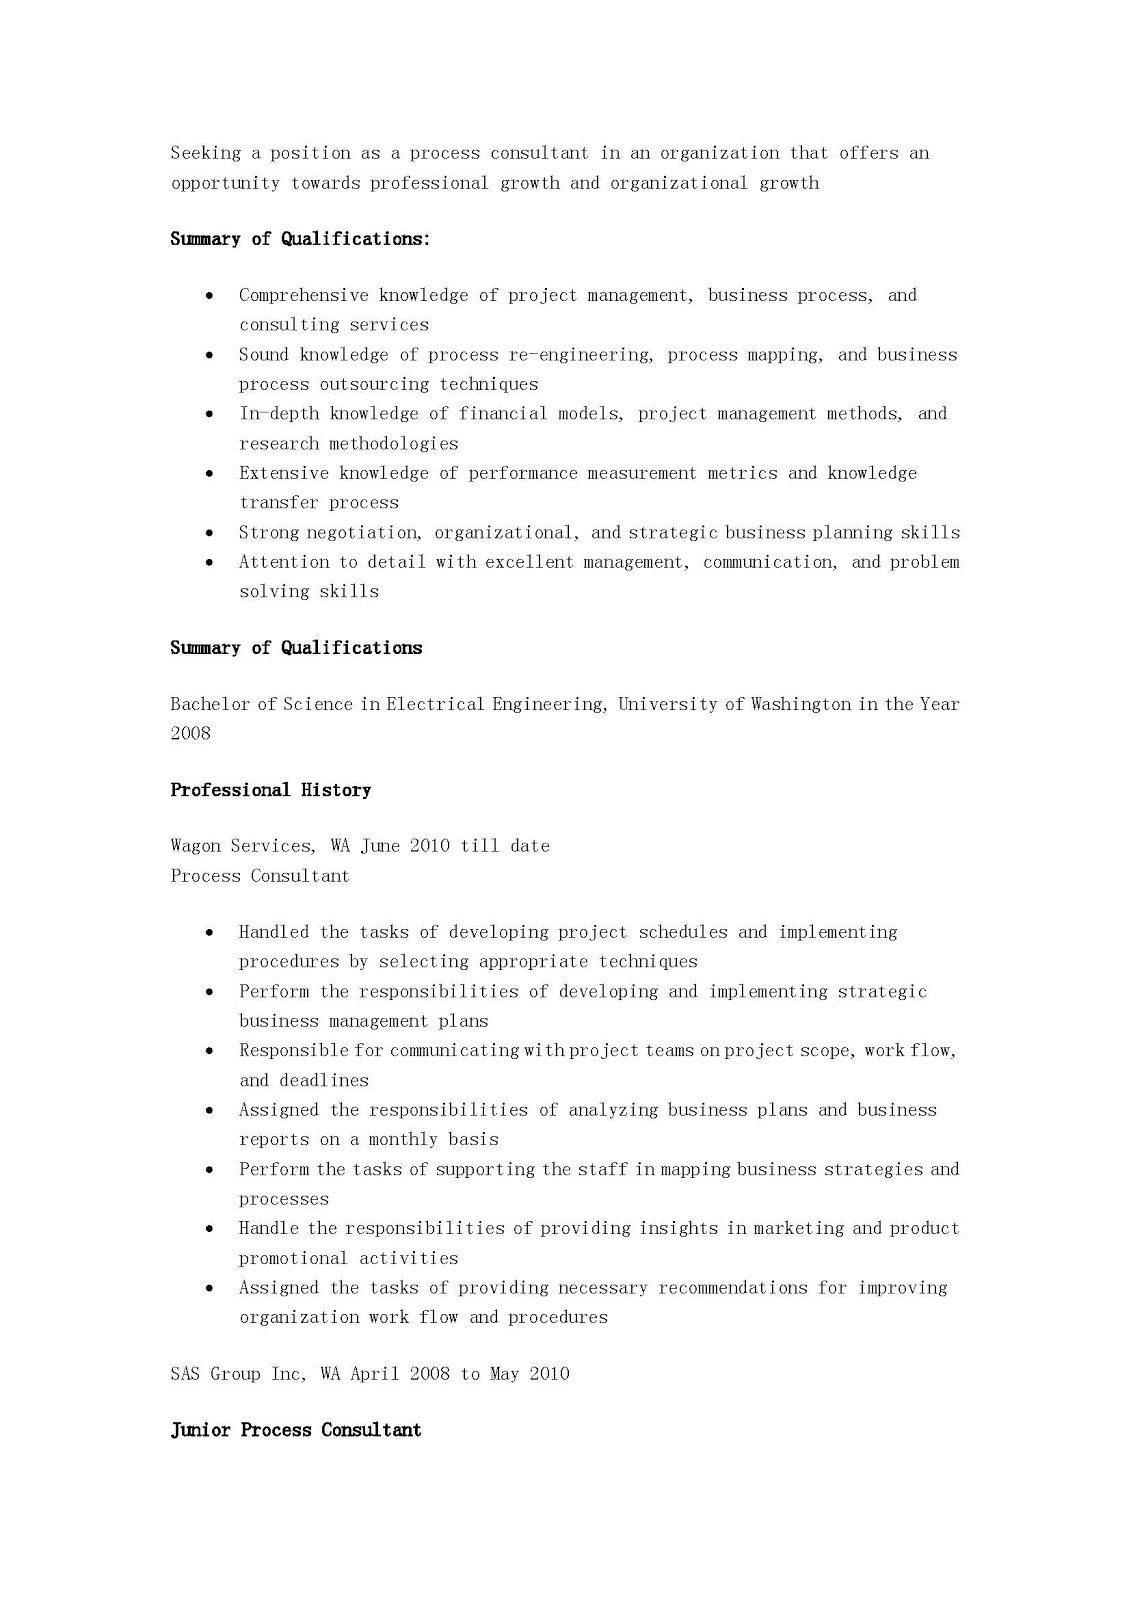 resume samples process consultant resume